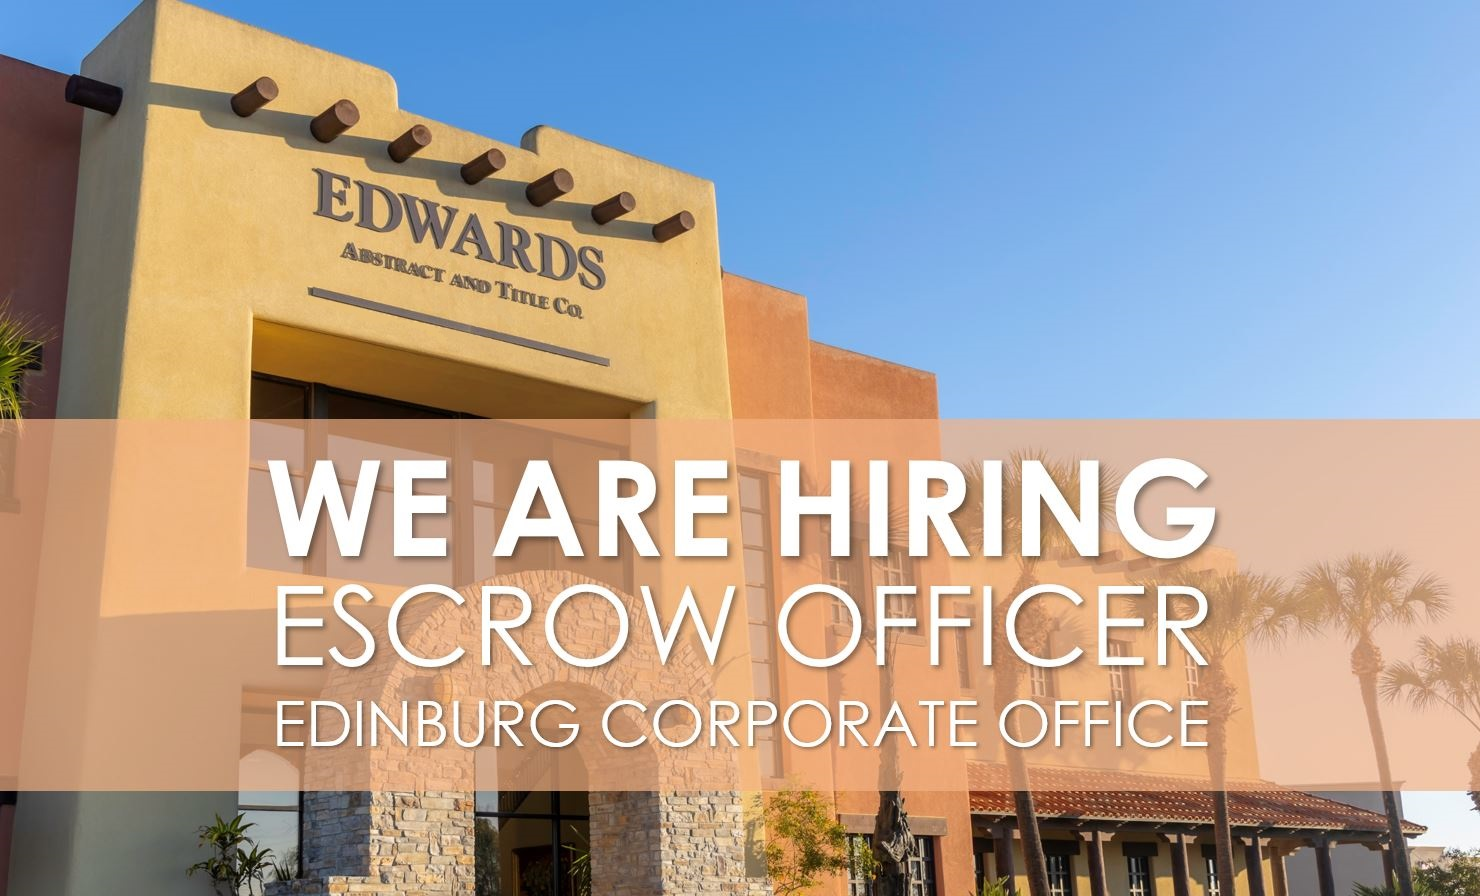 NOW HIRING! Escrow Officer – Edinburg Corporate Office